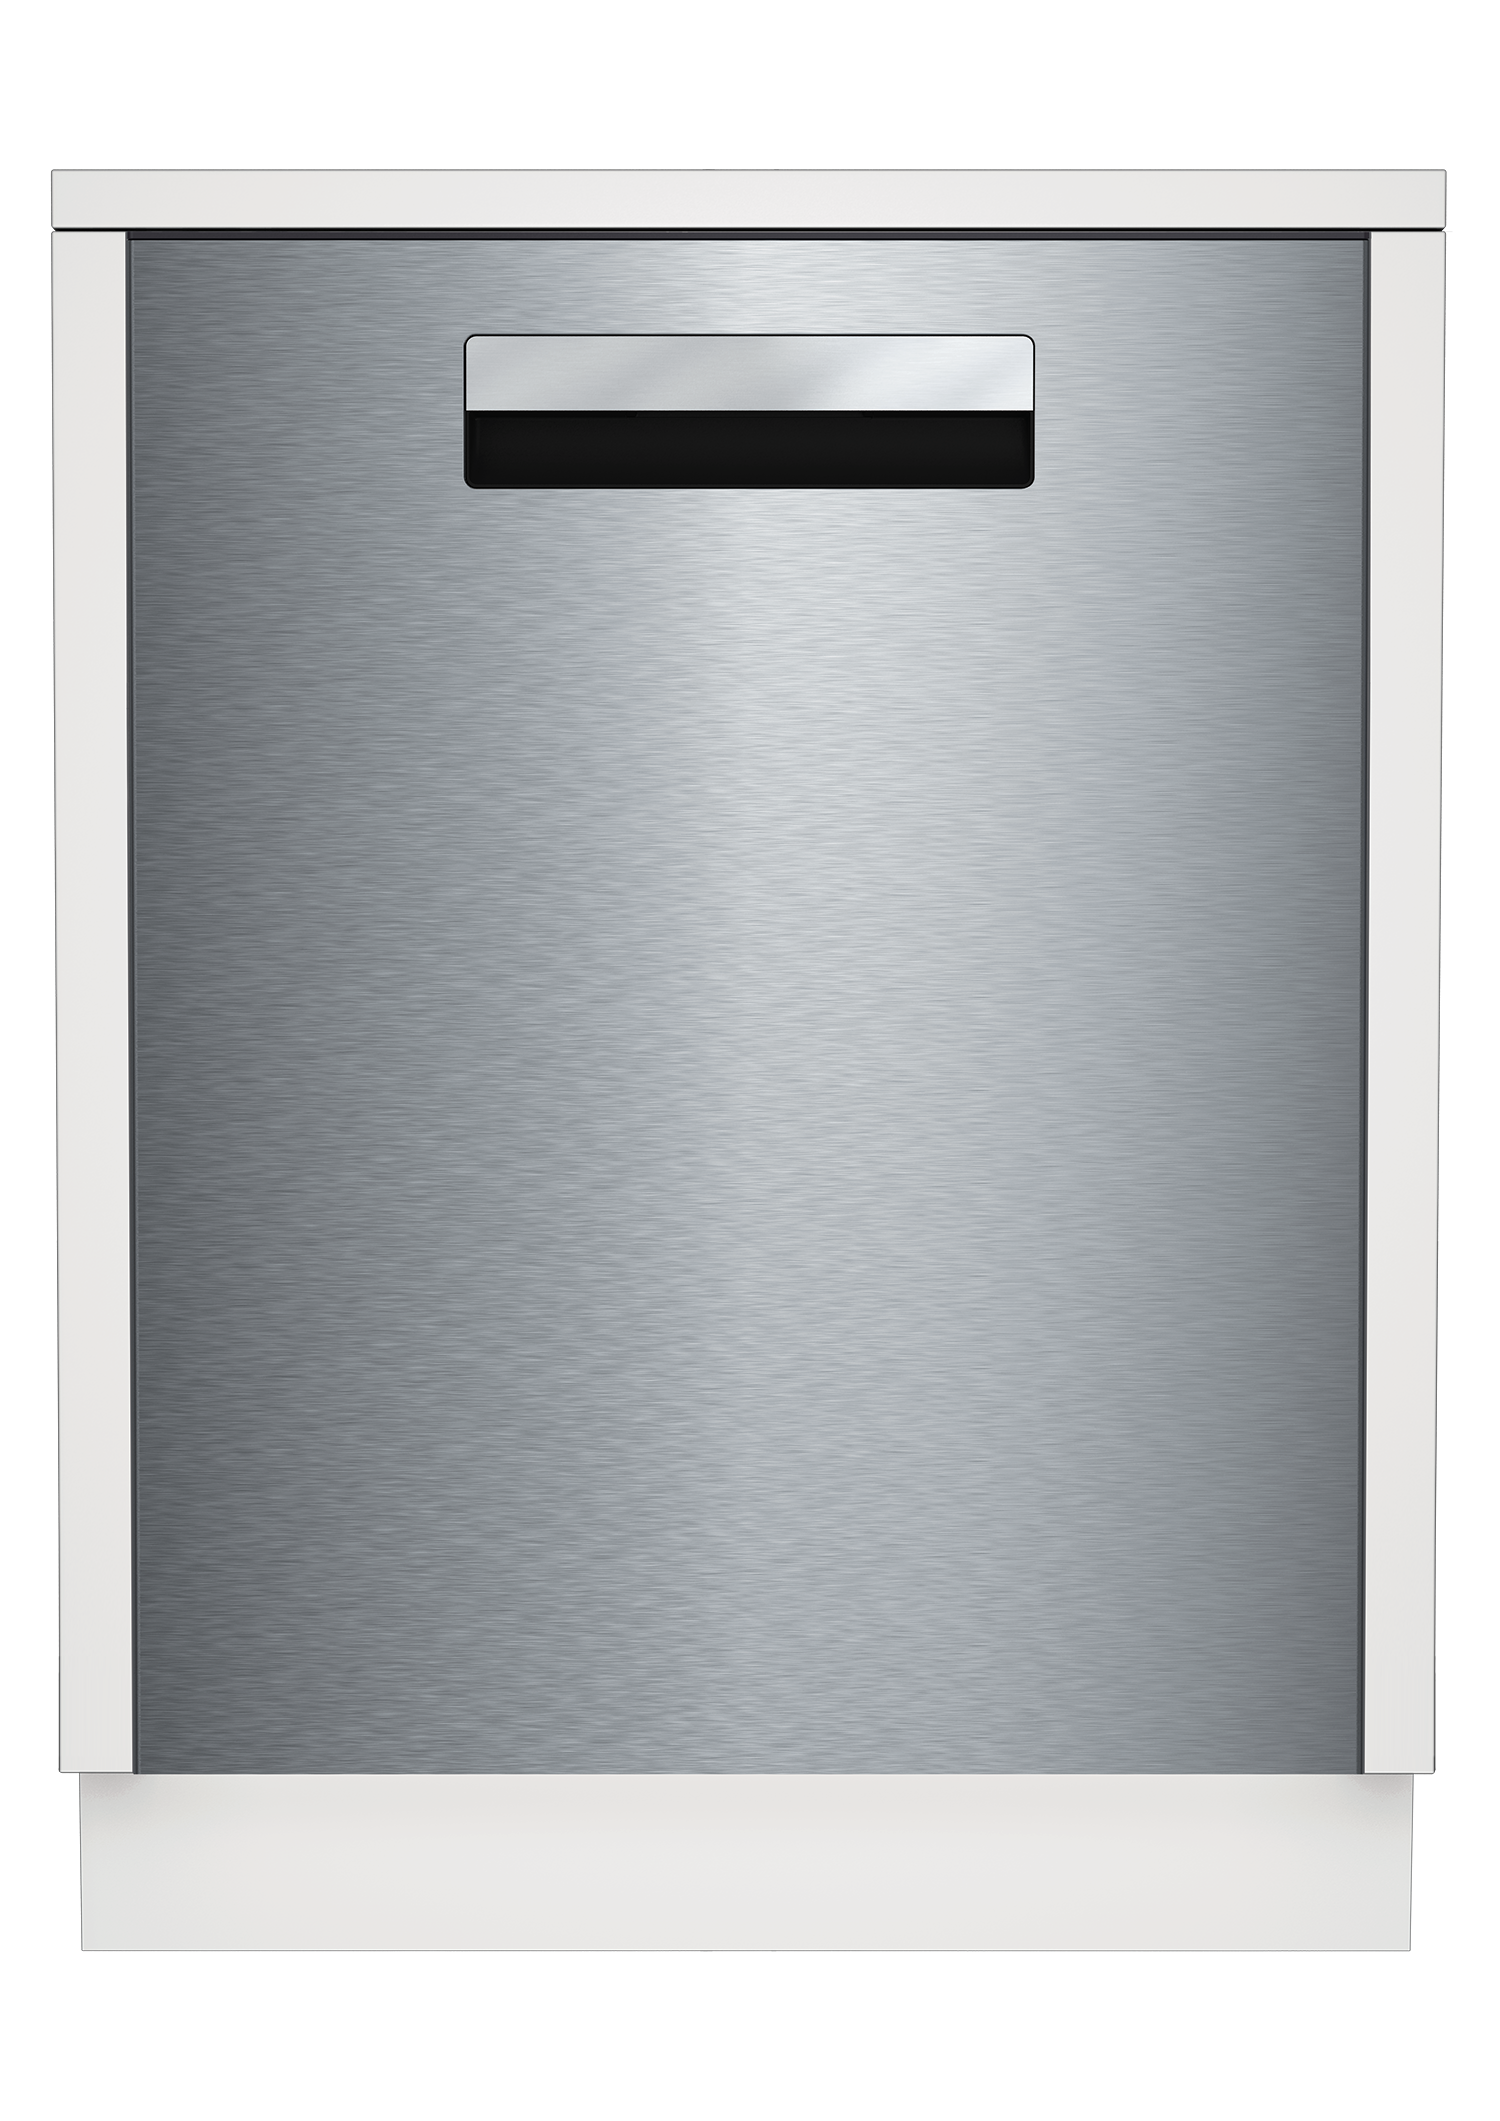 Tall Tub Stainless Dishwasher, 16 place settings, 45 dBa, Top Control with Pocket Handle DDT38530XIH